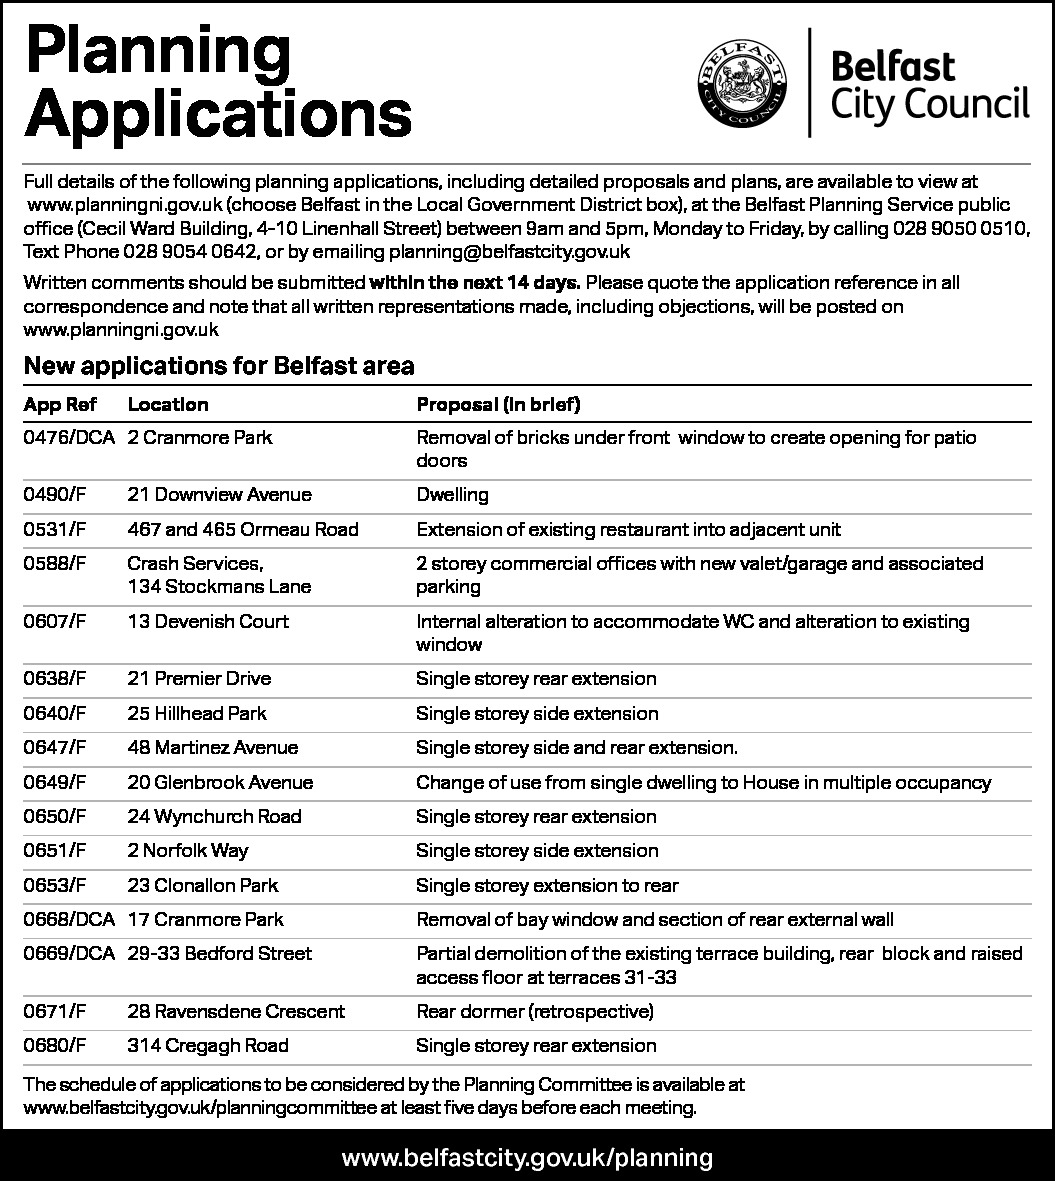 PLANNING NOTICE - BELFAST CITY COUNCIL